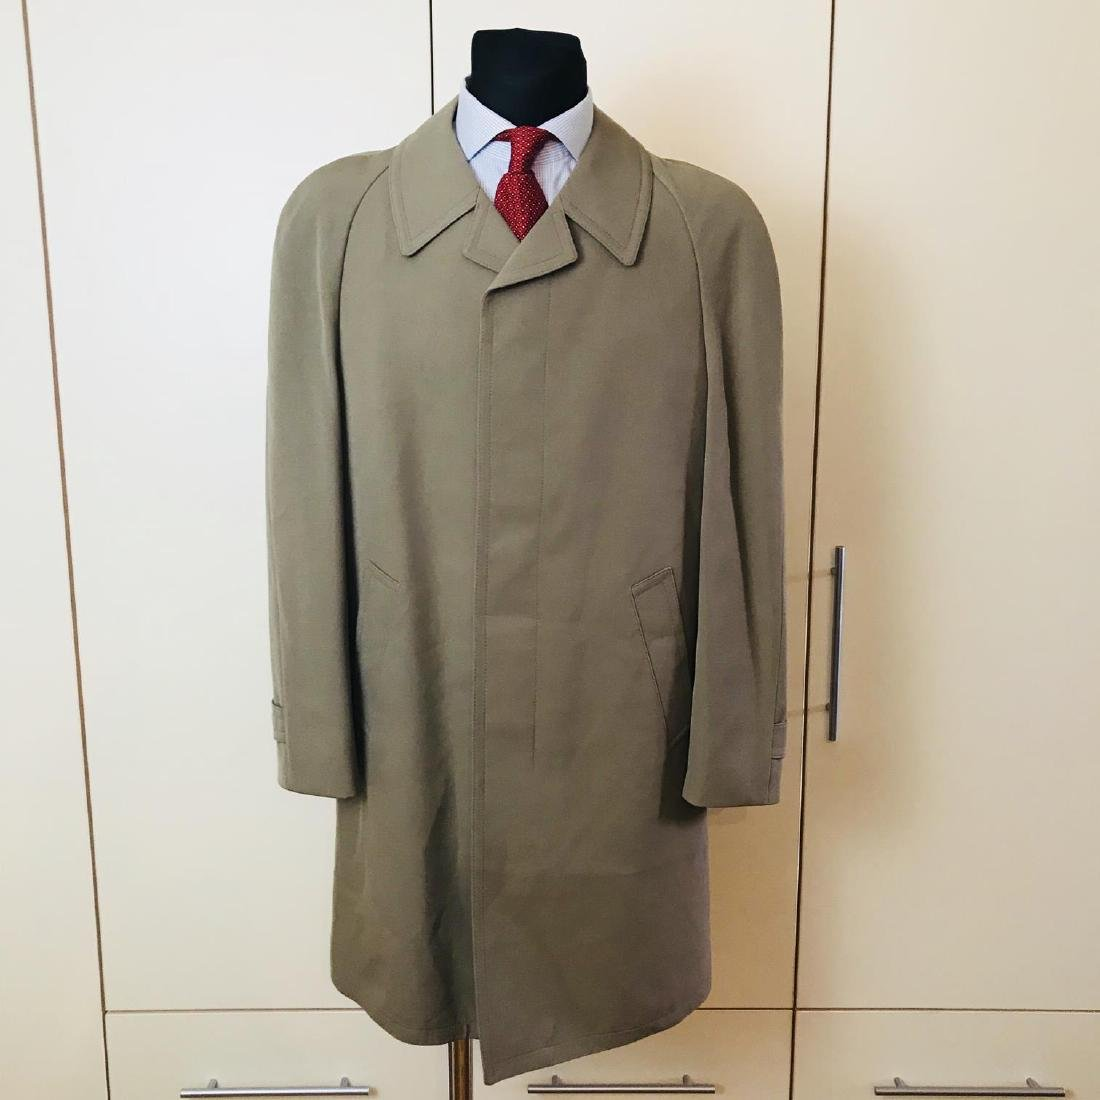 Vintage Men's Trench Coat Size US 38 EUR 48